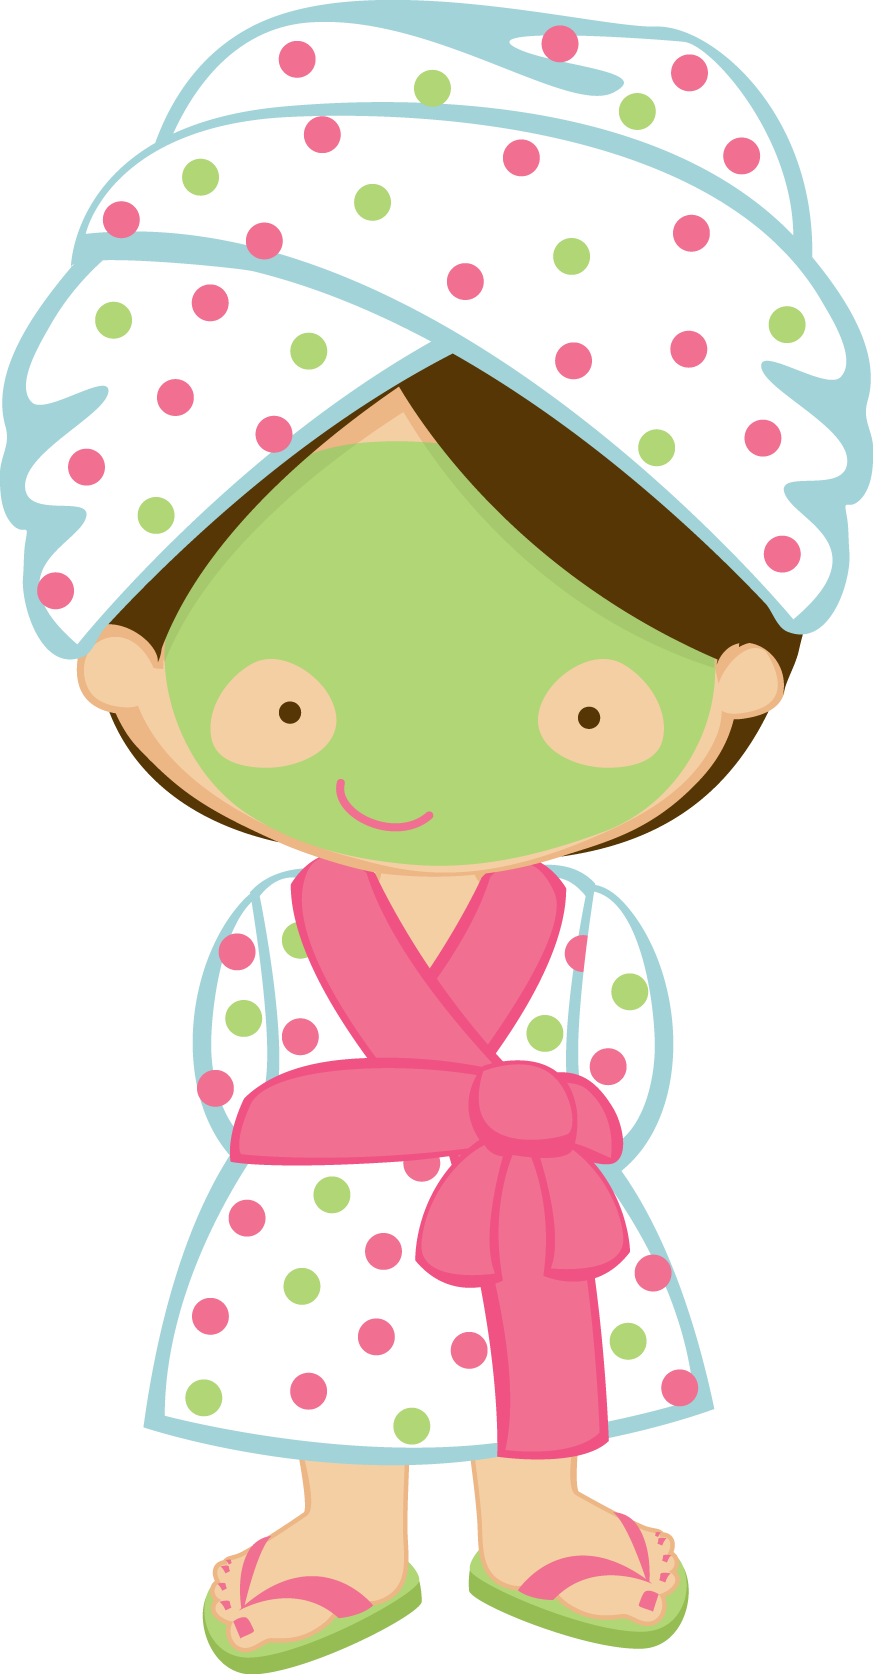 Spa clipart. Free girl cliparts download